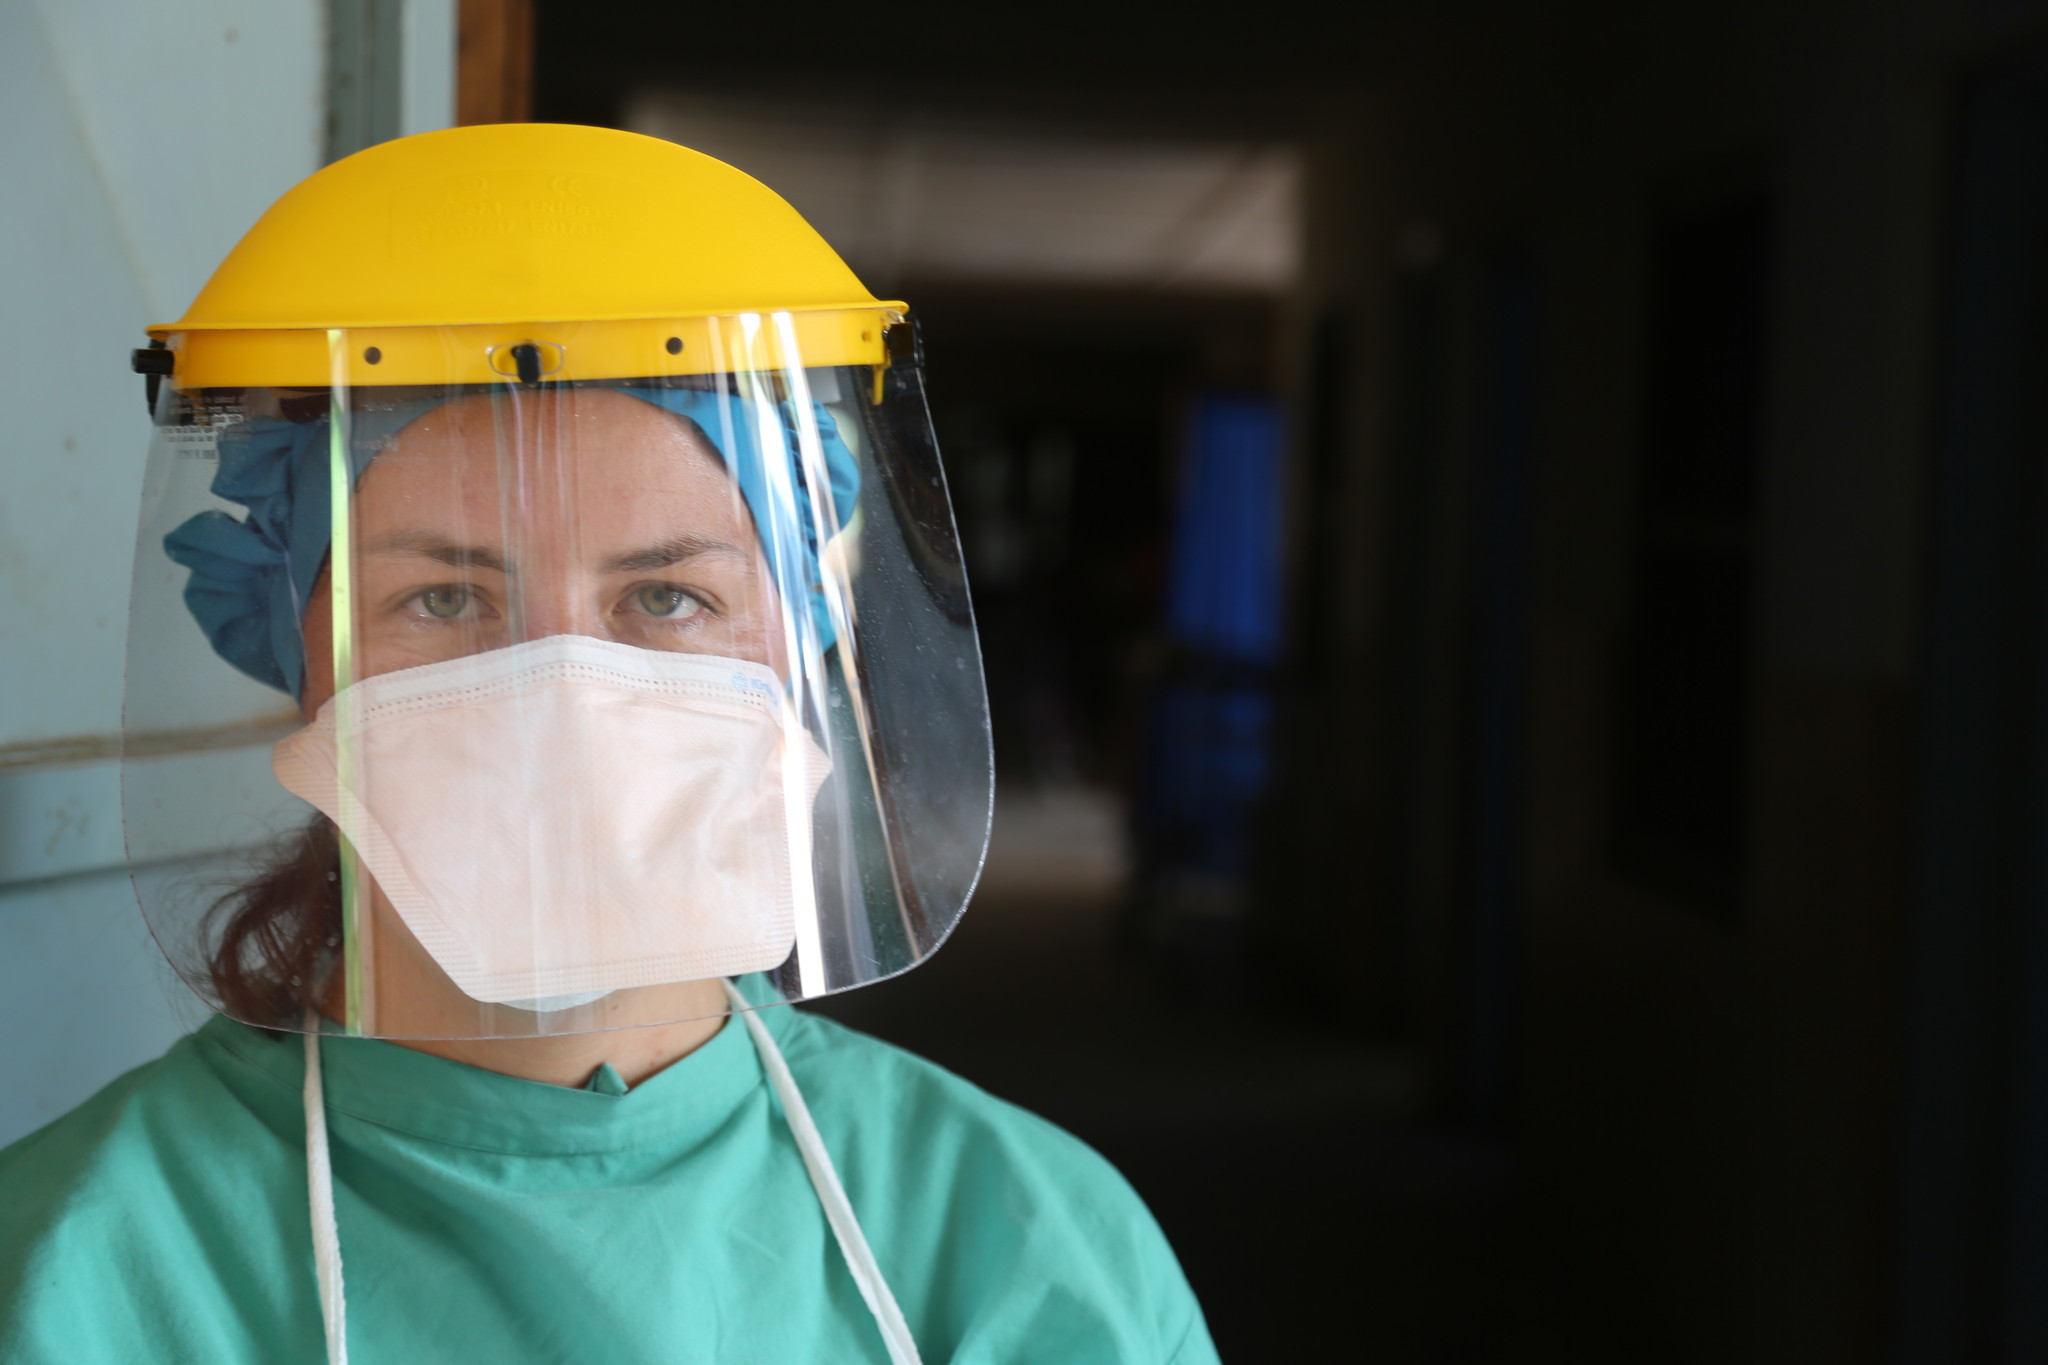 Researcher nears crowdfunding goal in fight against Ebola